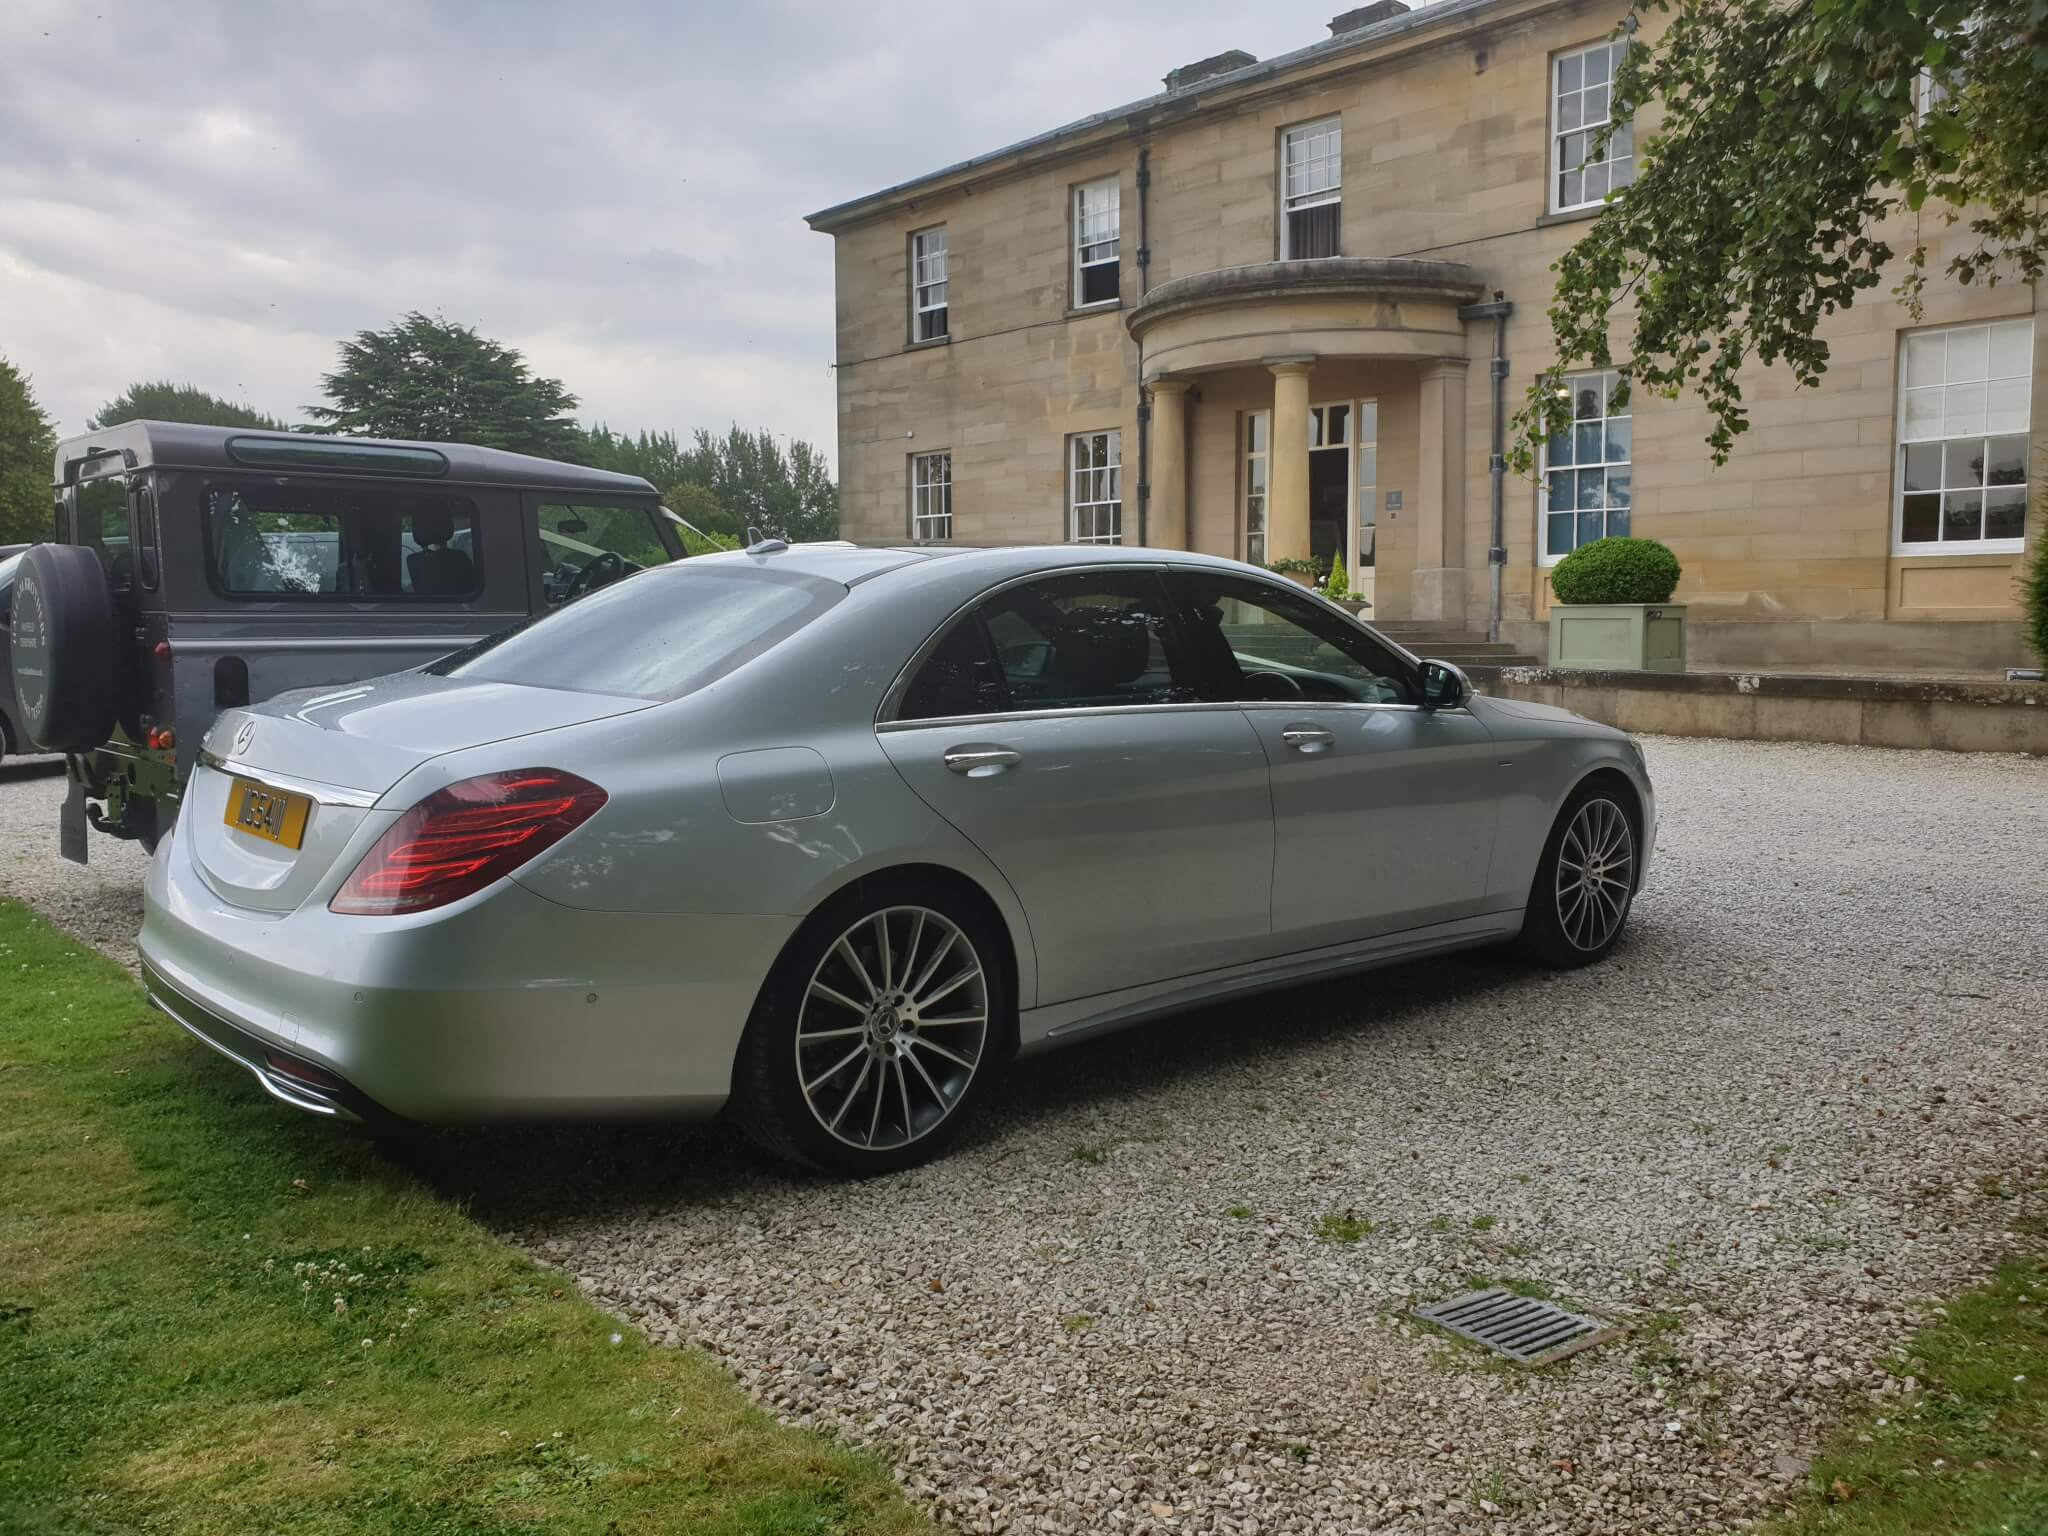 Mercedes s class Amg in silver Outside a Lovely House in The Cotswolds